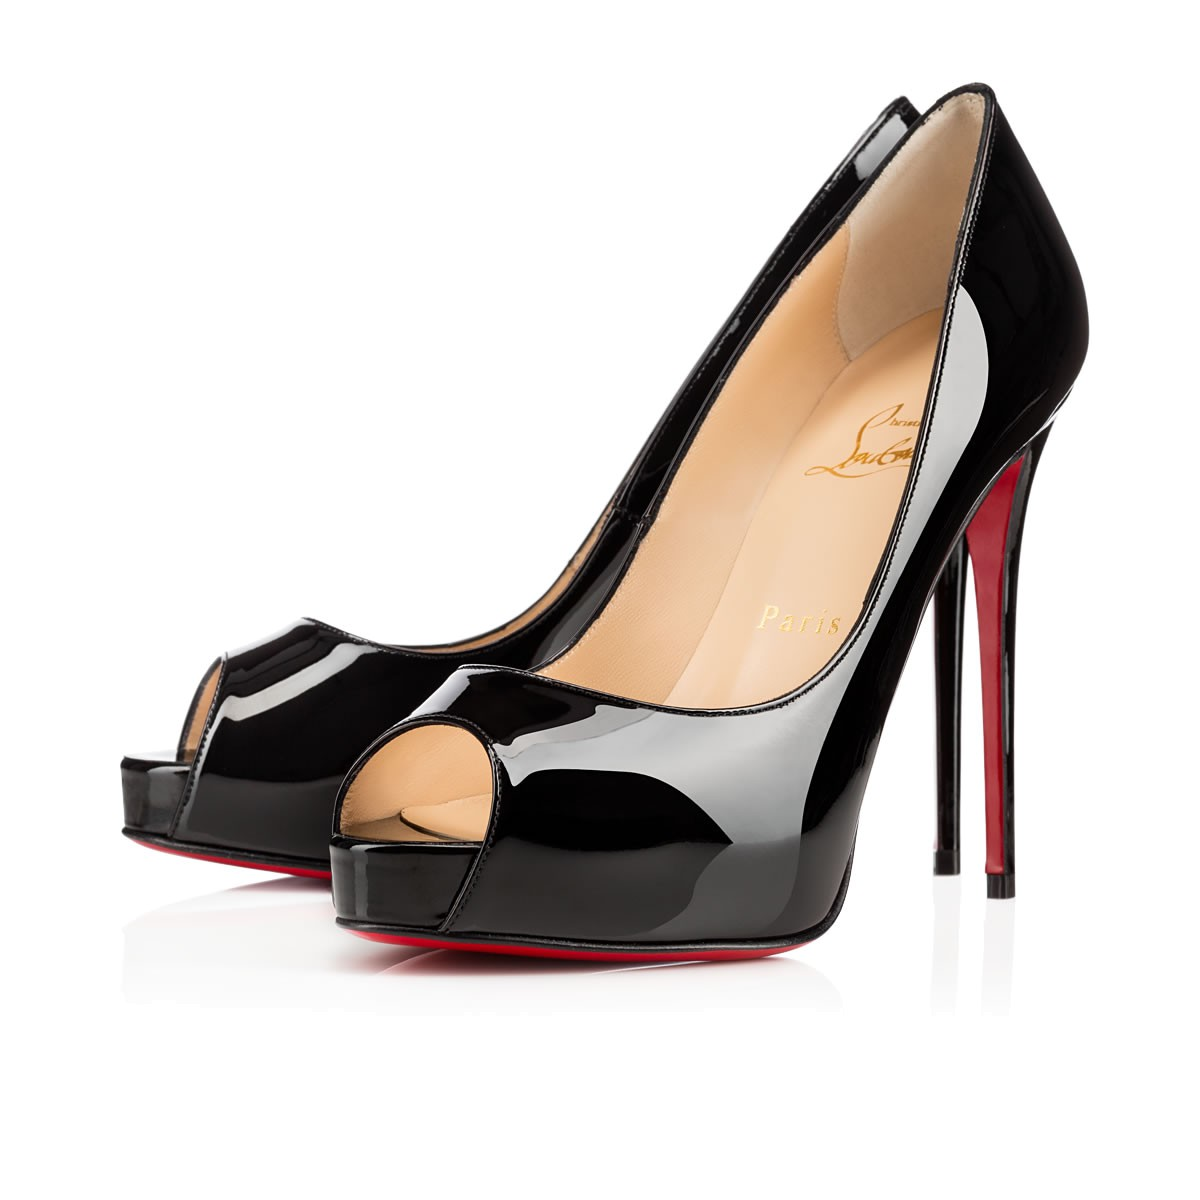 best authentic bd465 98b67 New Very Prive 120 Black Patent Leather - Women Shoes - Christian Louboutin